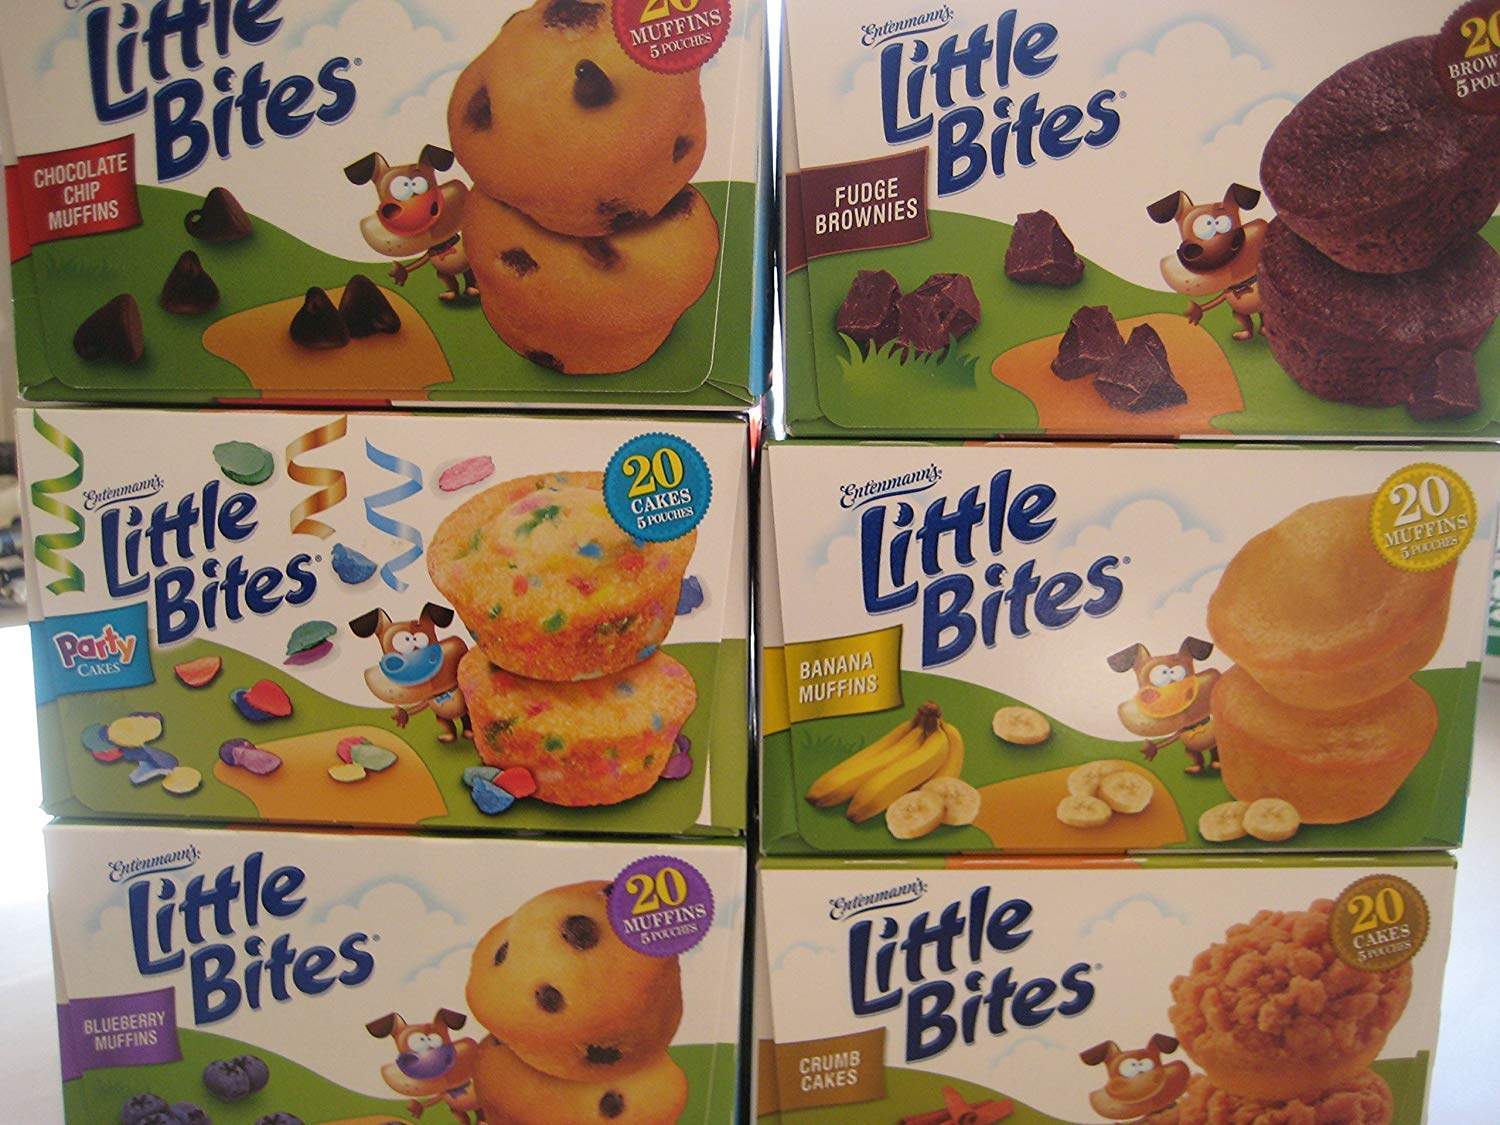 Entenmann's Little Bites Variety Bundle: Chocolate Chip Muffins, Fudge Brownies, Party Cakes, Banana Muffins, Blueberry Muffins, Crumb Cakes. (6-Pack)